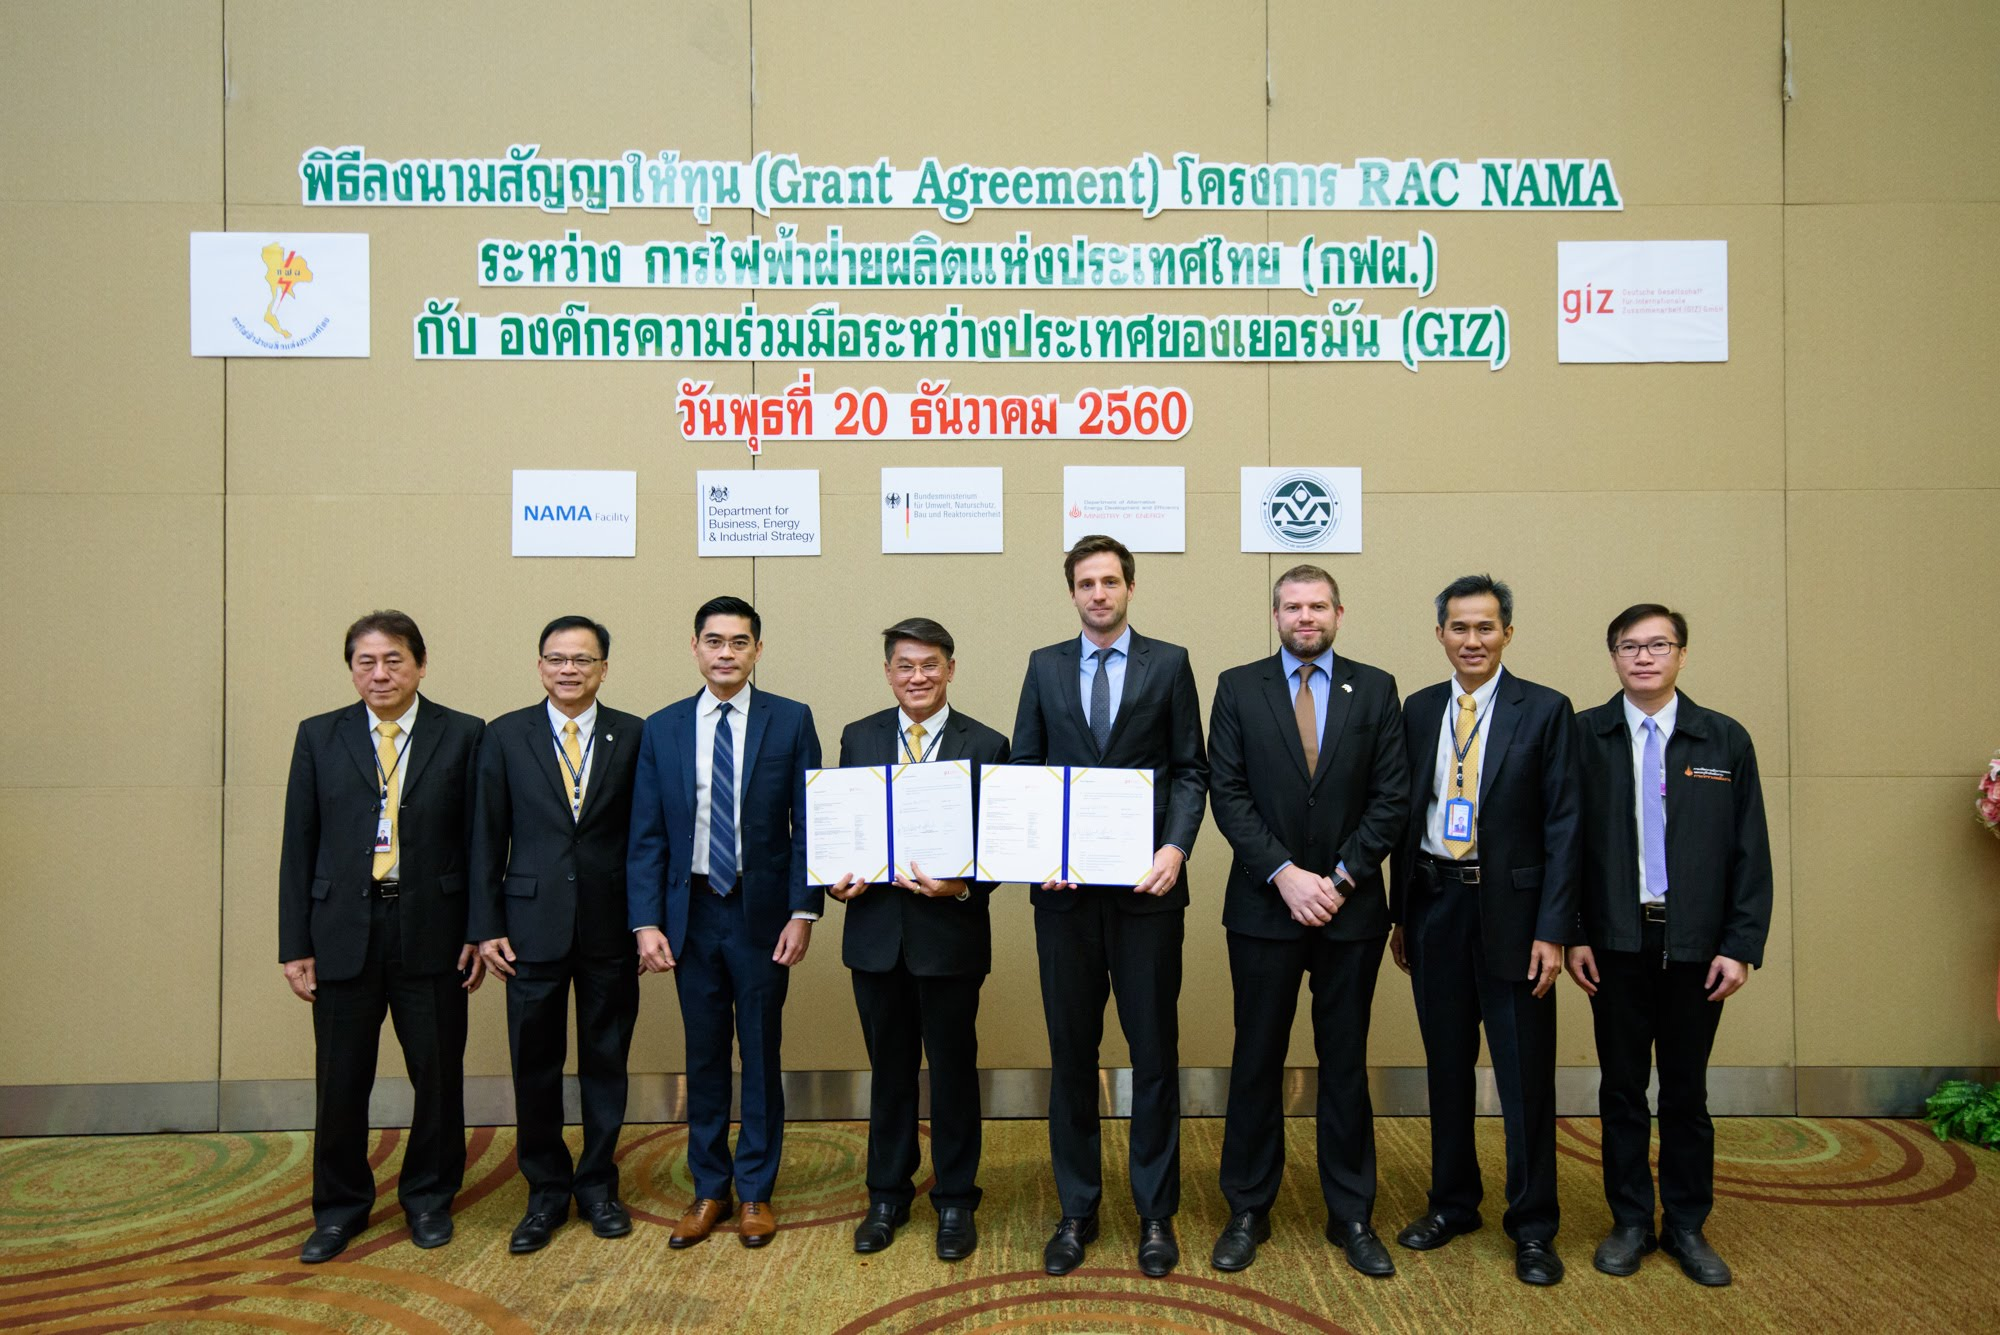 EGAT and GIZ sign Grant Agreement for THB 320 Million in Support of Green Cooling Technologies